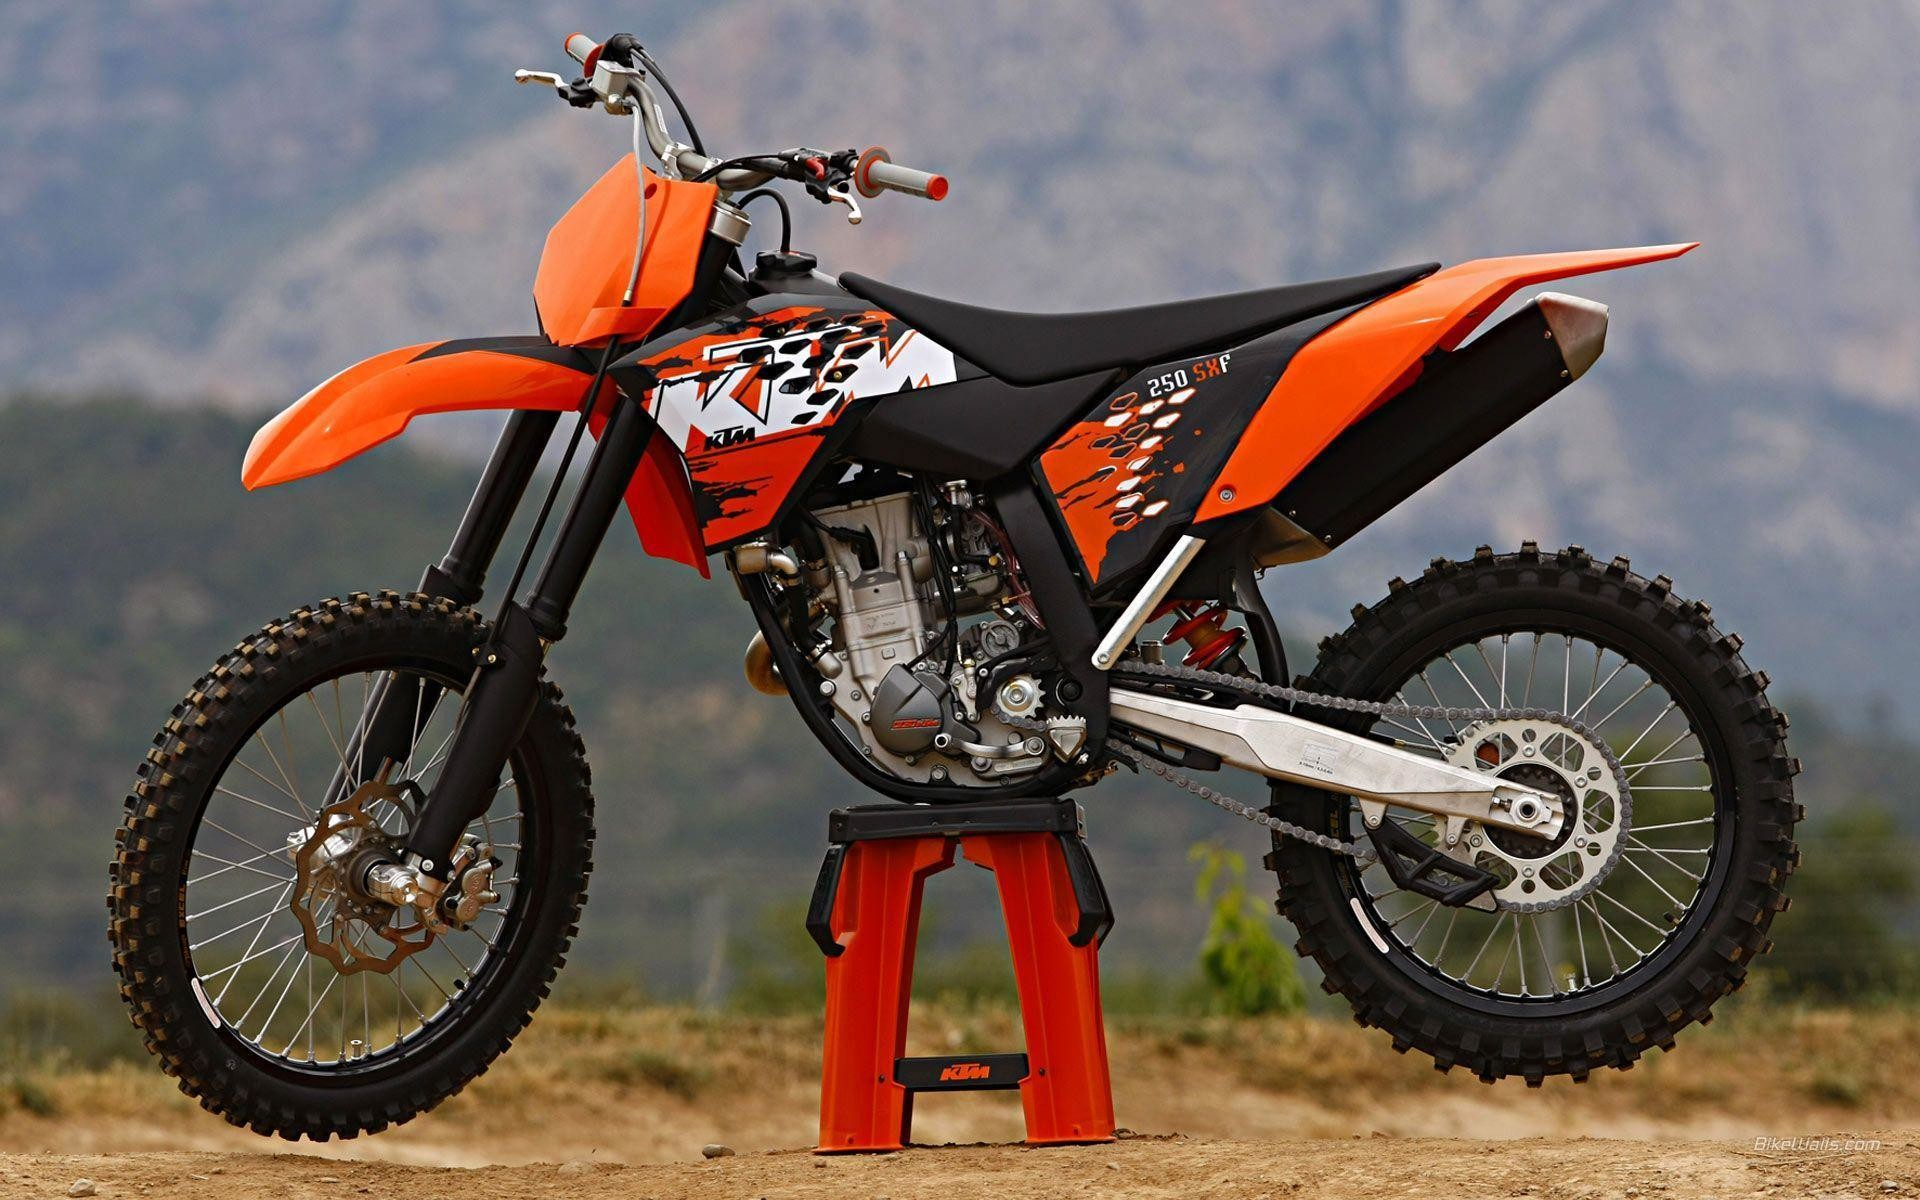 Ktm Wallpaper Dirt Bike: Ktm Wallpaper Dirt Bike (65+ Images